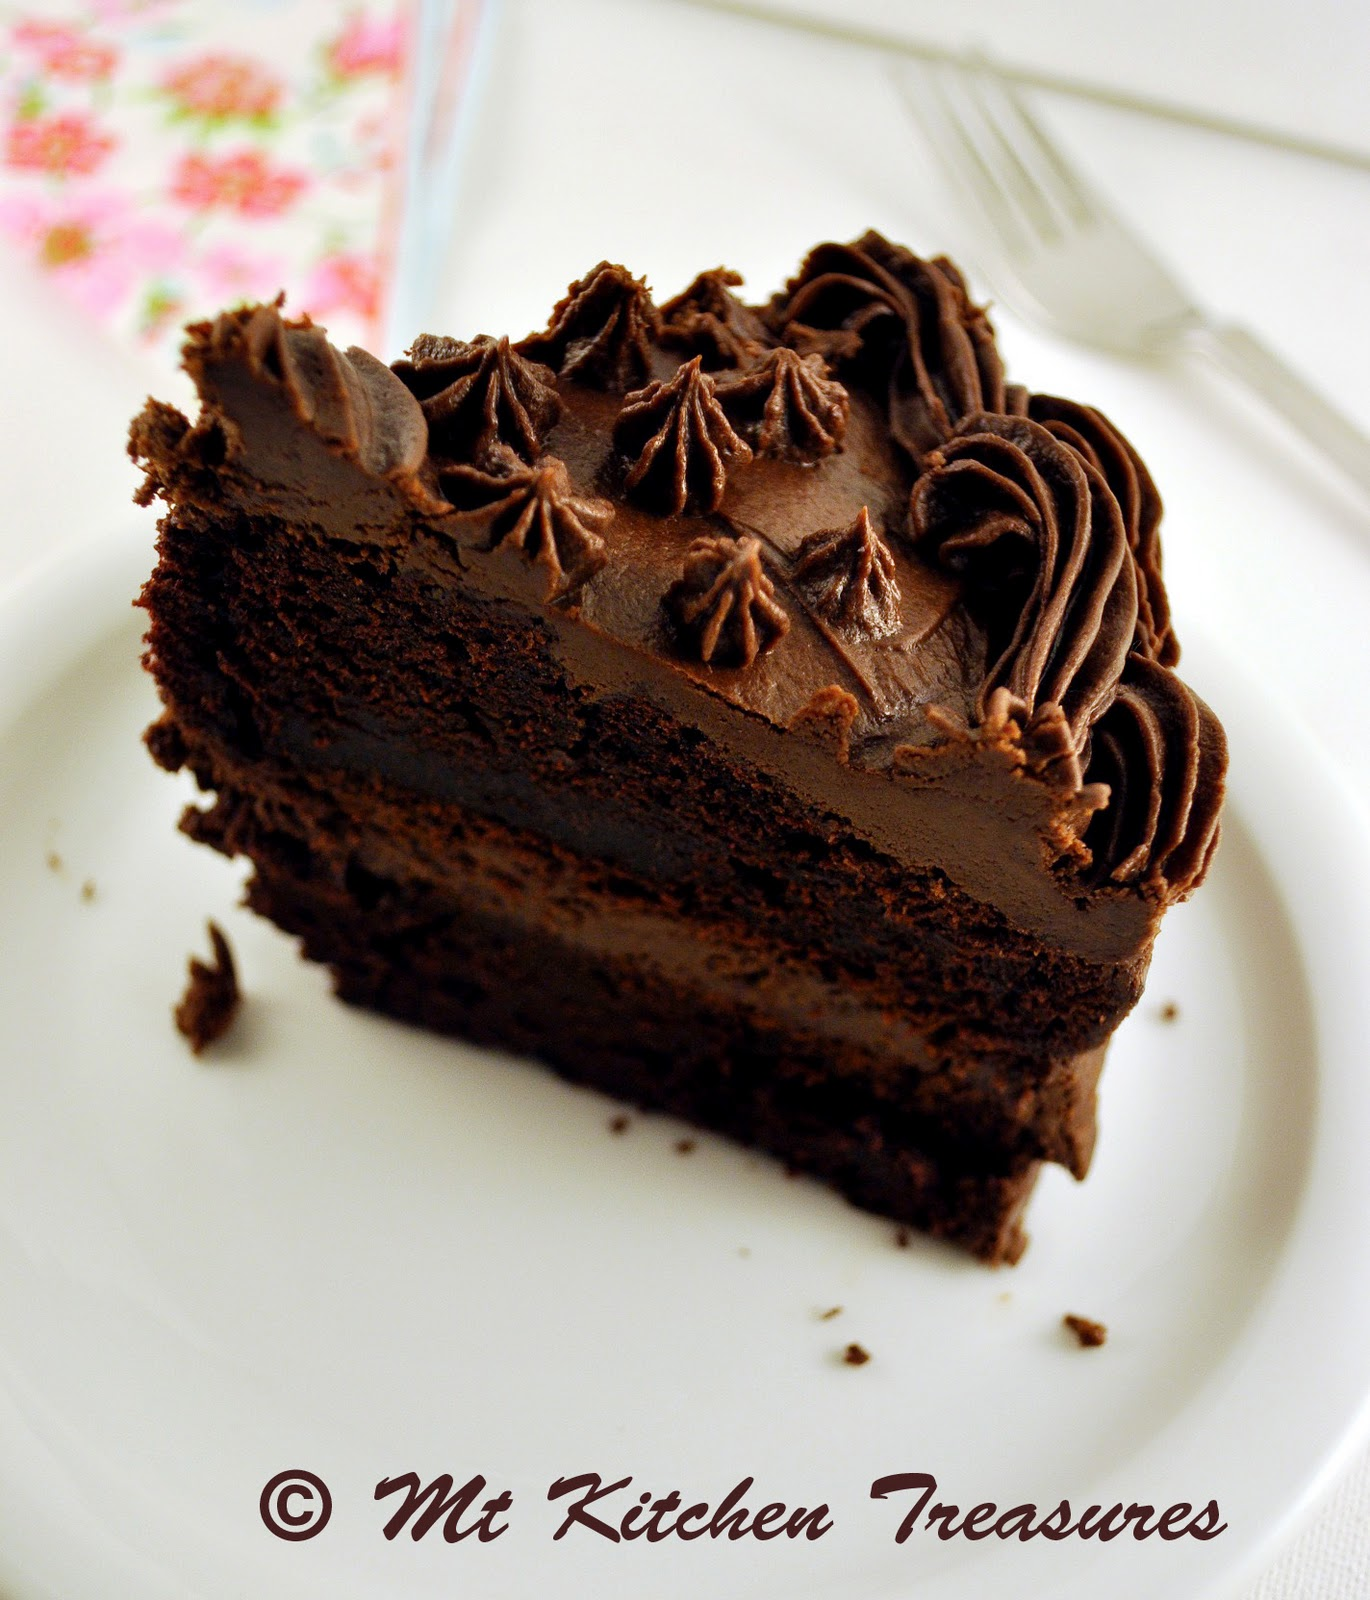 My Kitchen Treasures: Devil's Food Cake